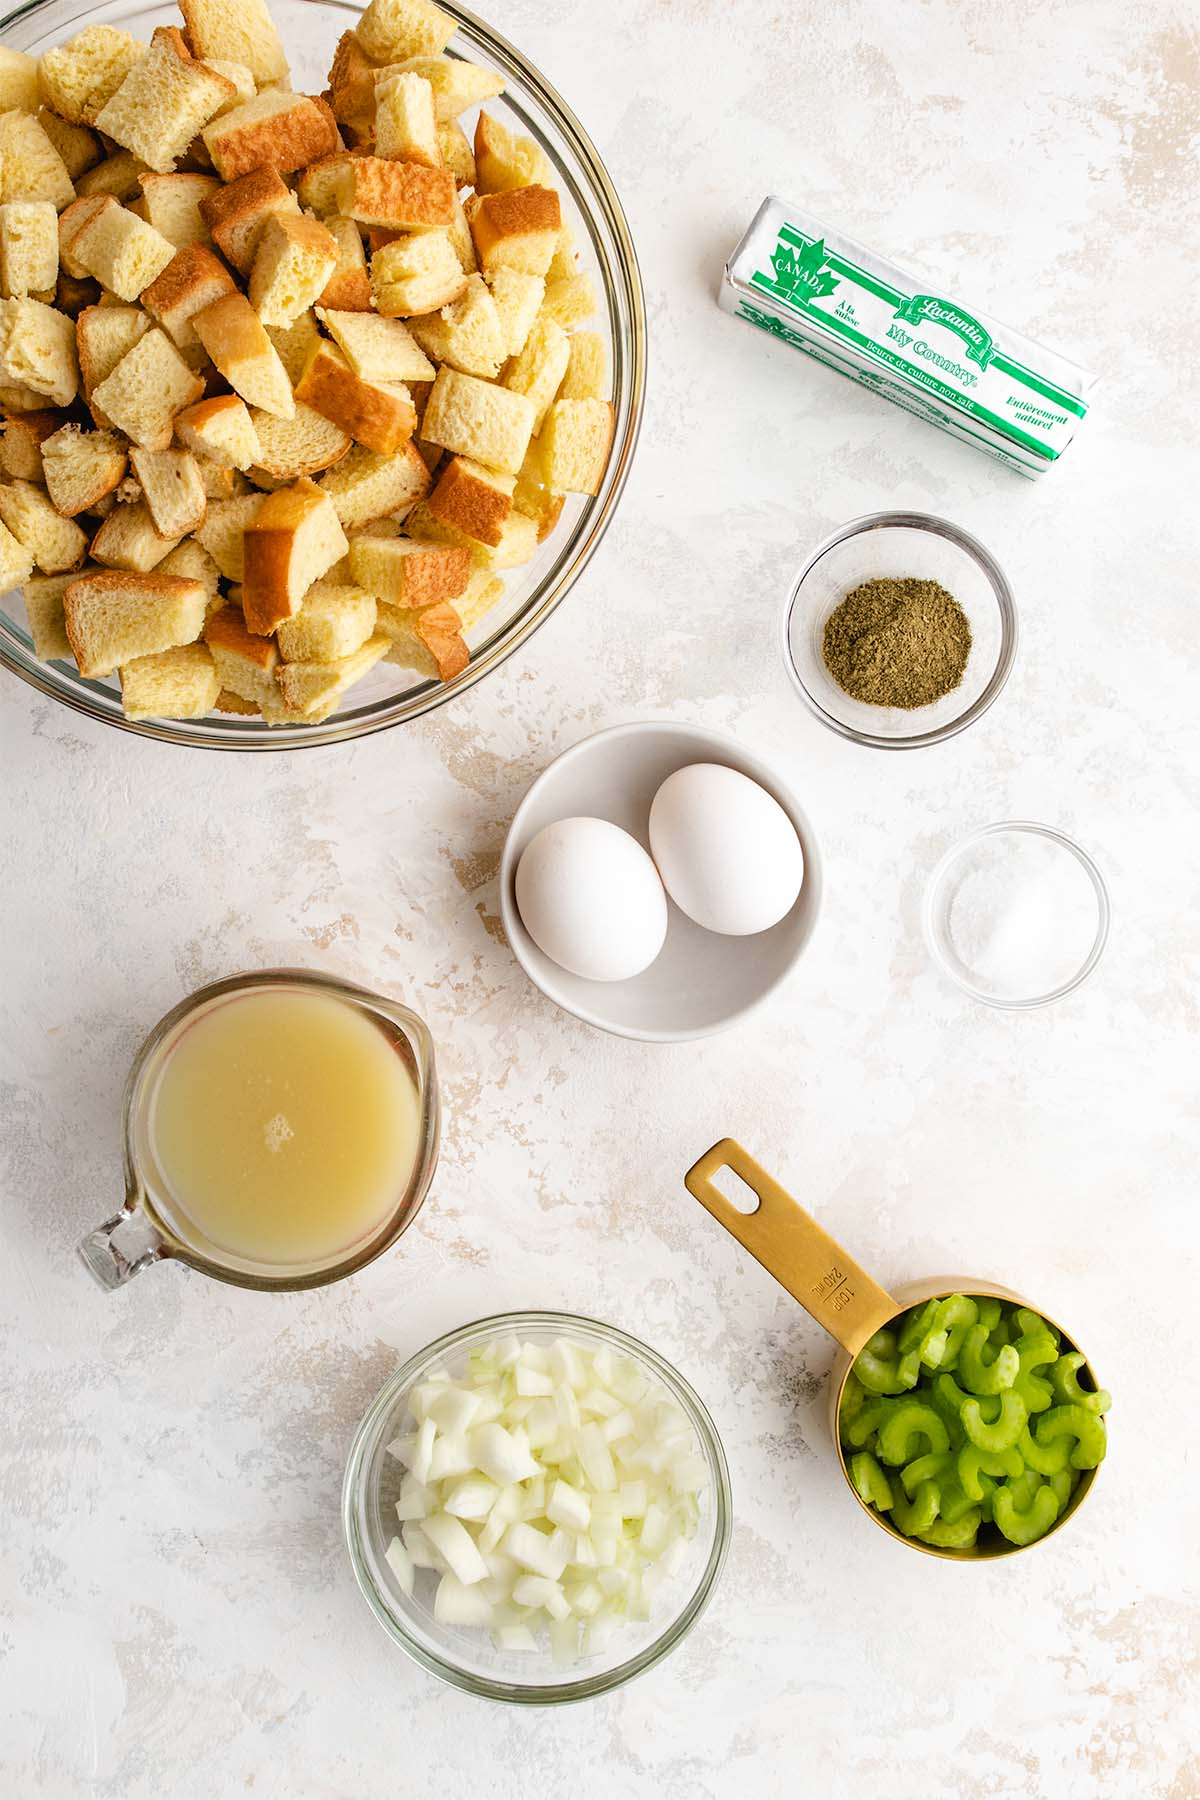 Ingredients needed to make Instant Pot Stuffing, viewed from overhead.